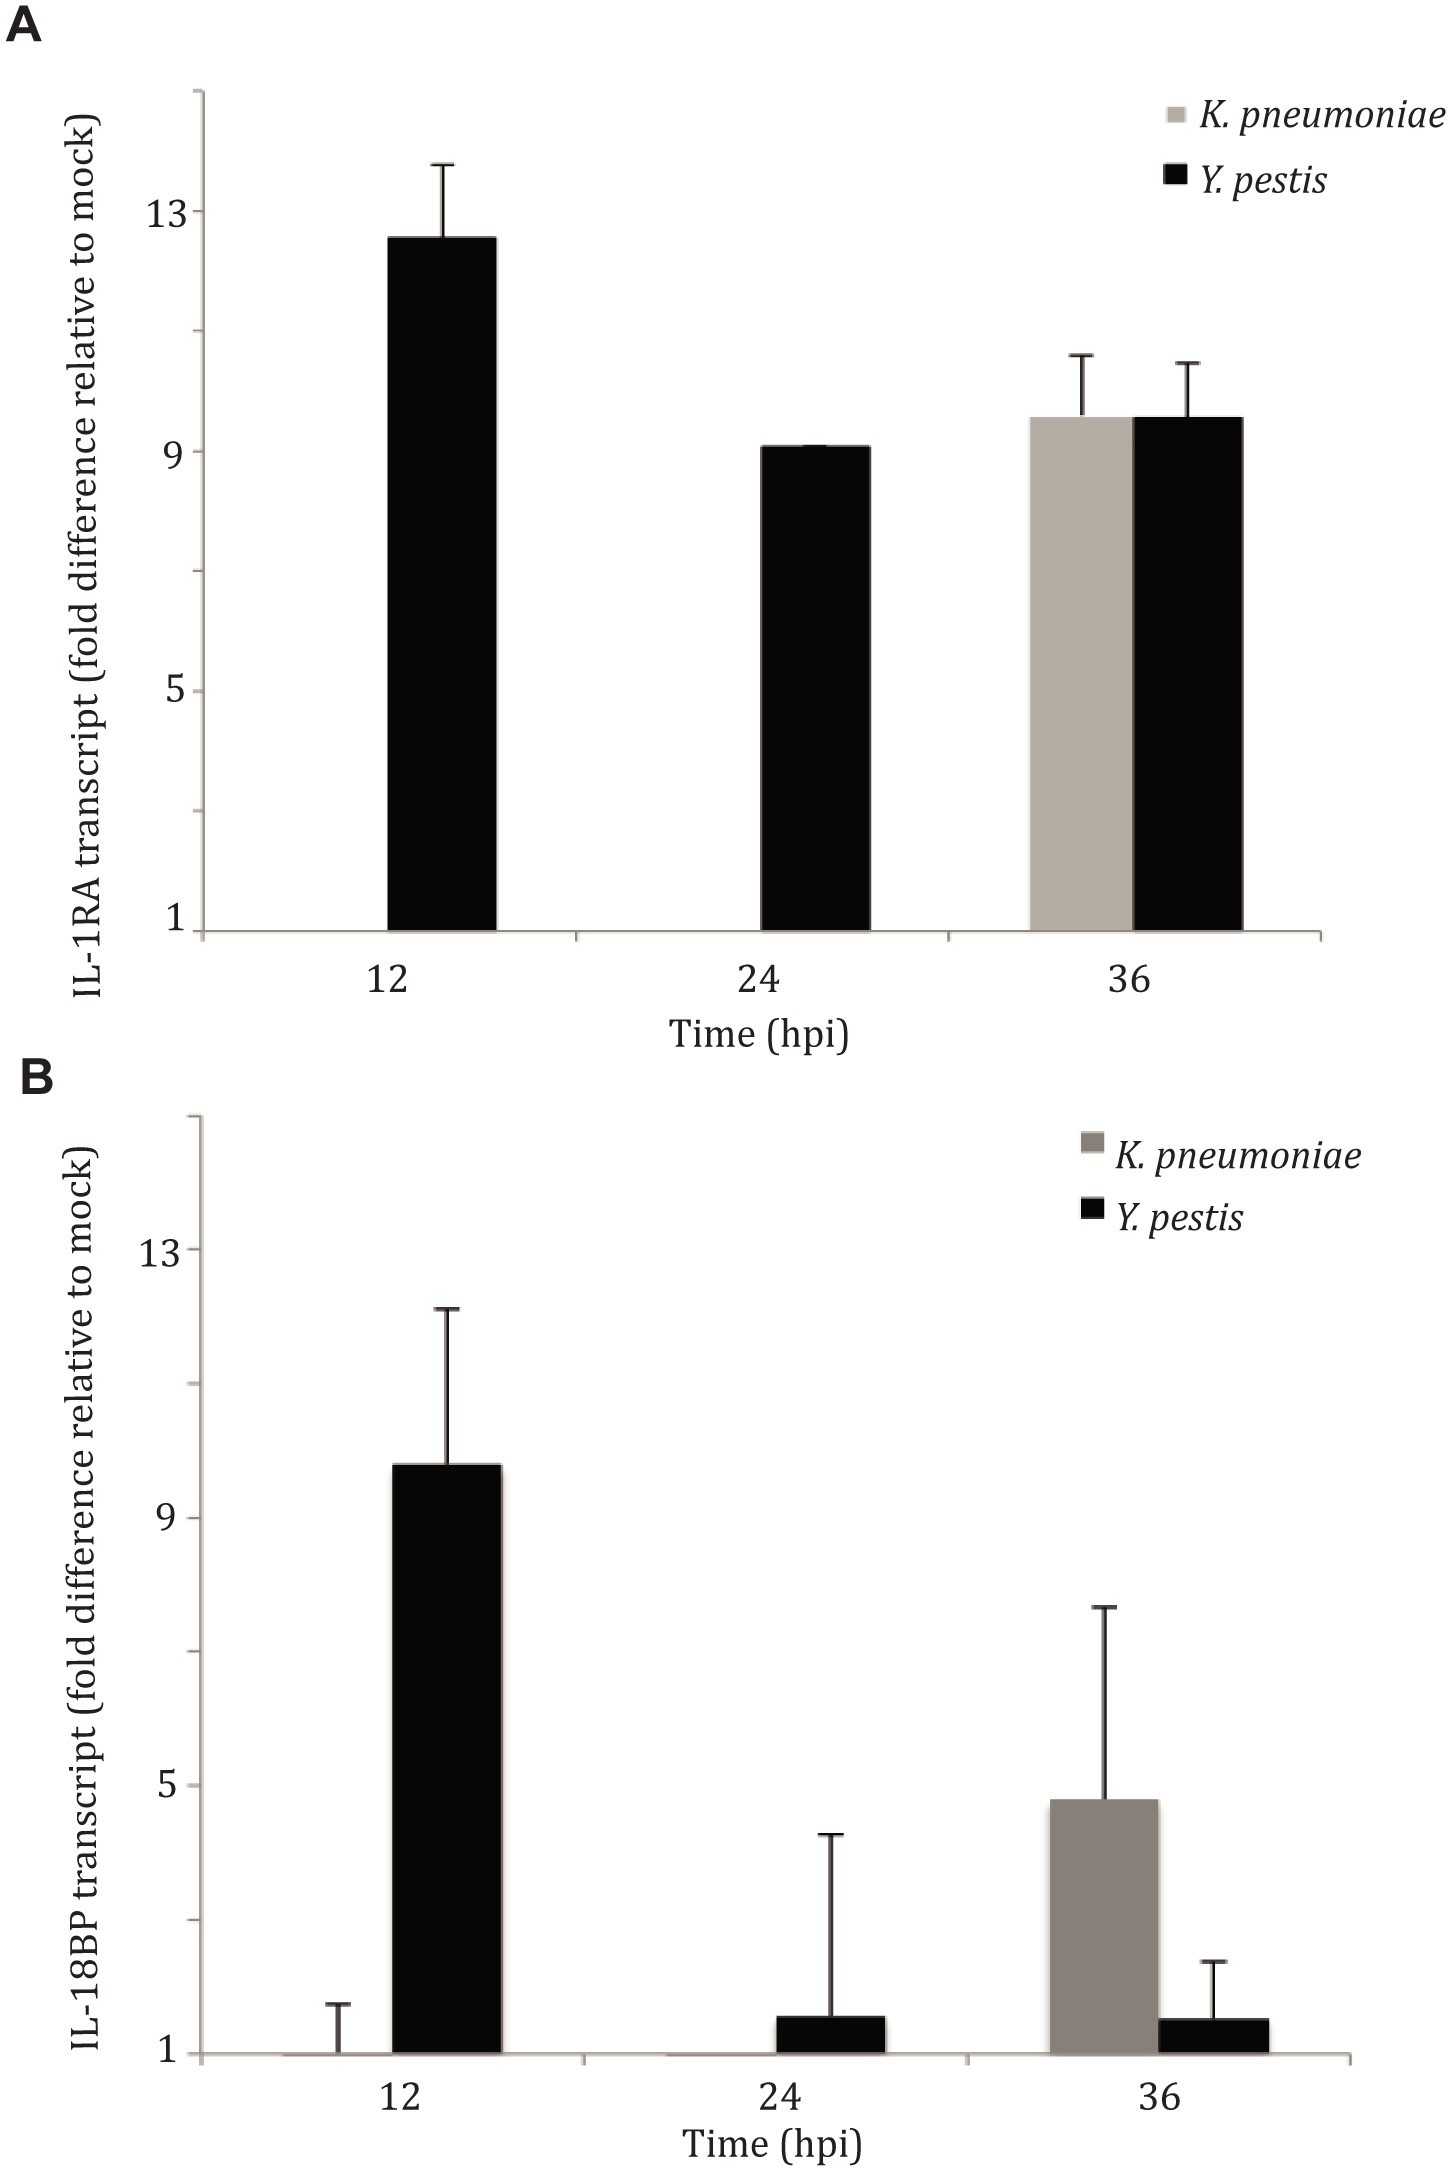 IL-1RA is induced in the lung early during pulmonary infection with <i>Y</i>. <i>pestis</i>, but not <i>K</i>. <i>pneumoniae</i>.